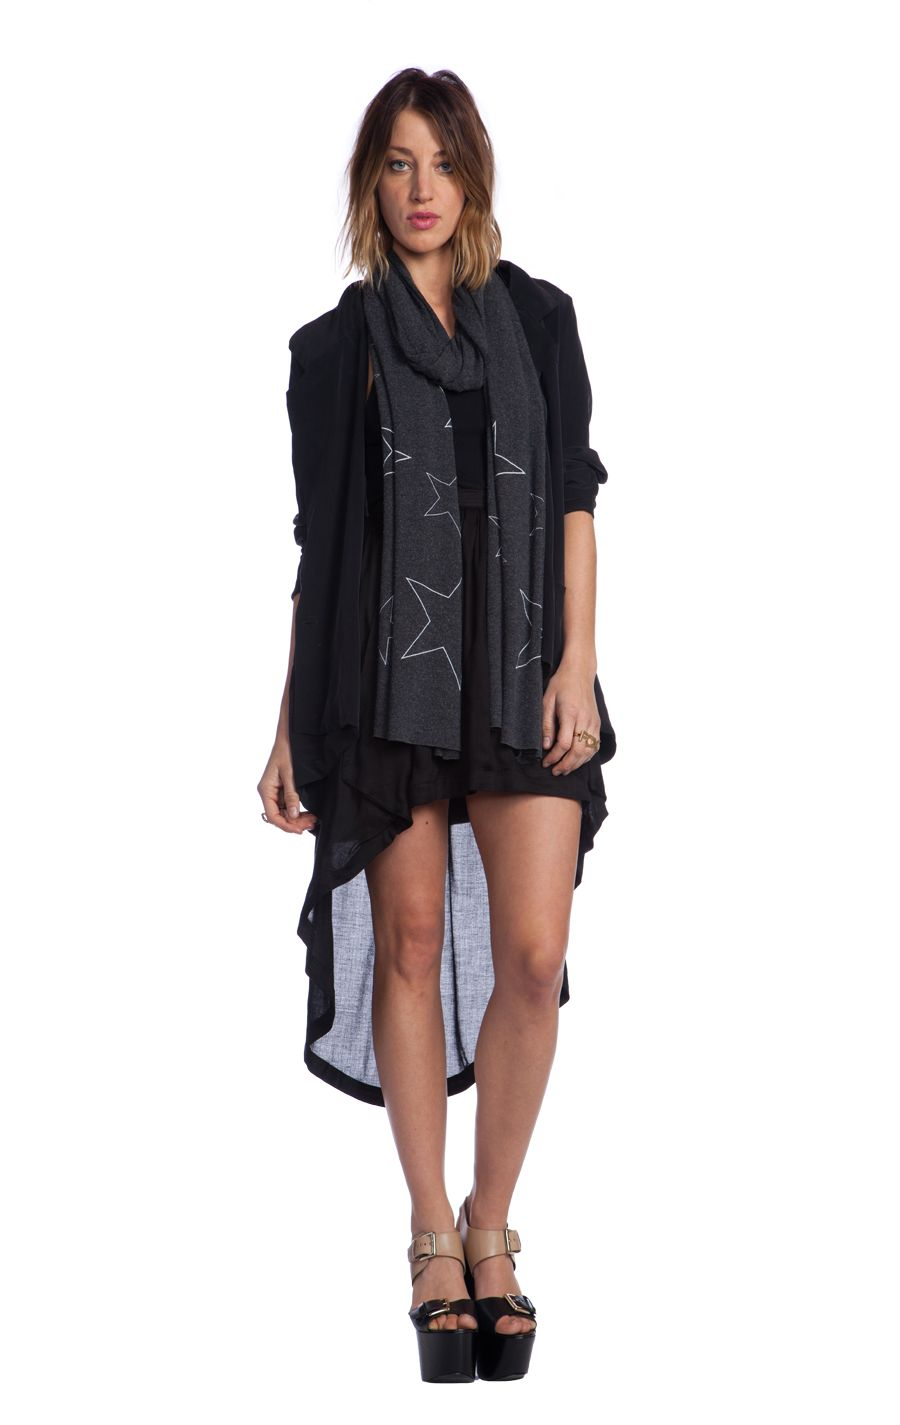 STARLIGHT - WILDFOX SCARF at Wildfox Couture in GHOST PINK, - CLEAN BLACK